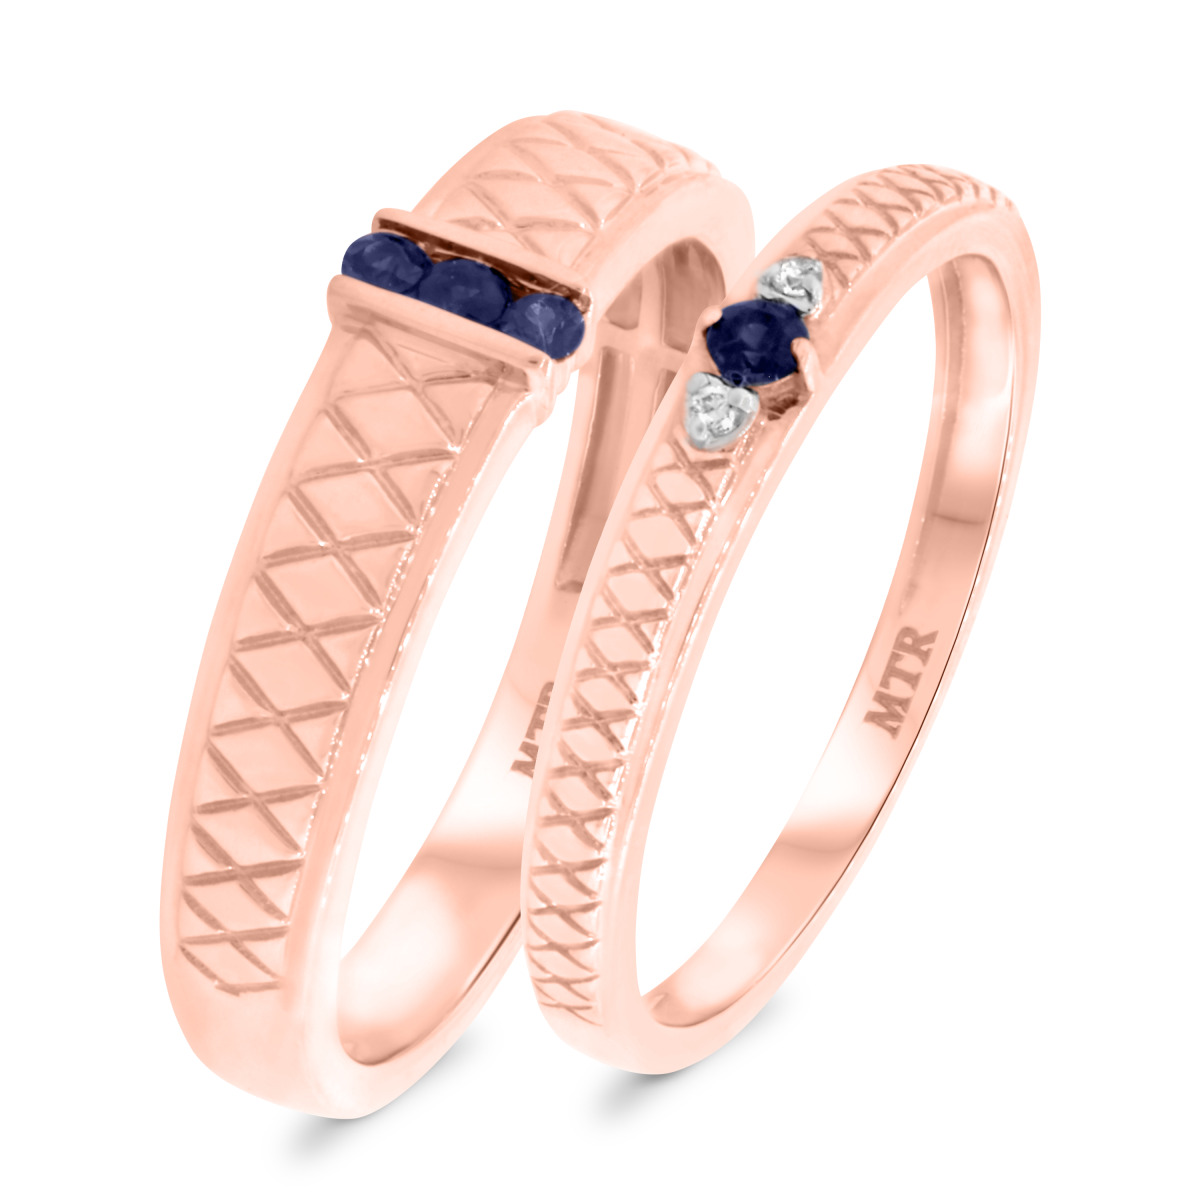 1/7 CT. T.W. Sapphire Matching Wedding Band Set 10K Rose Gold